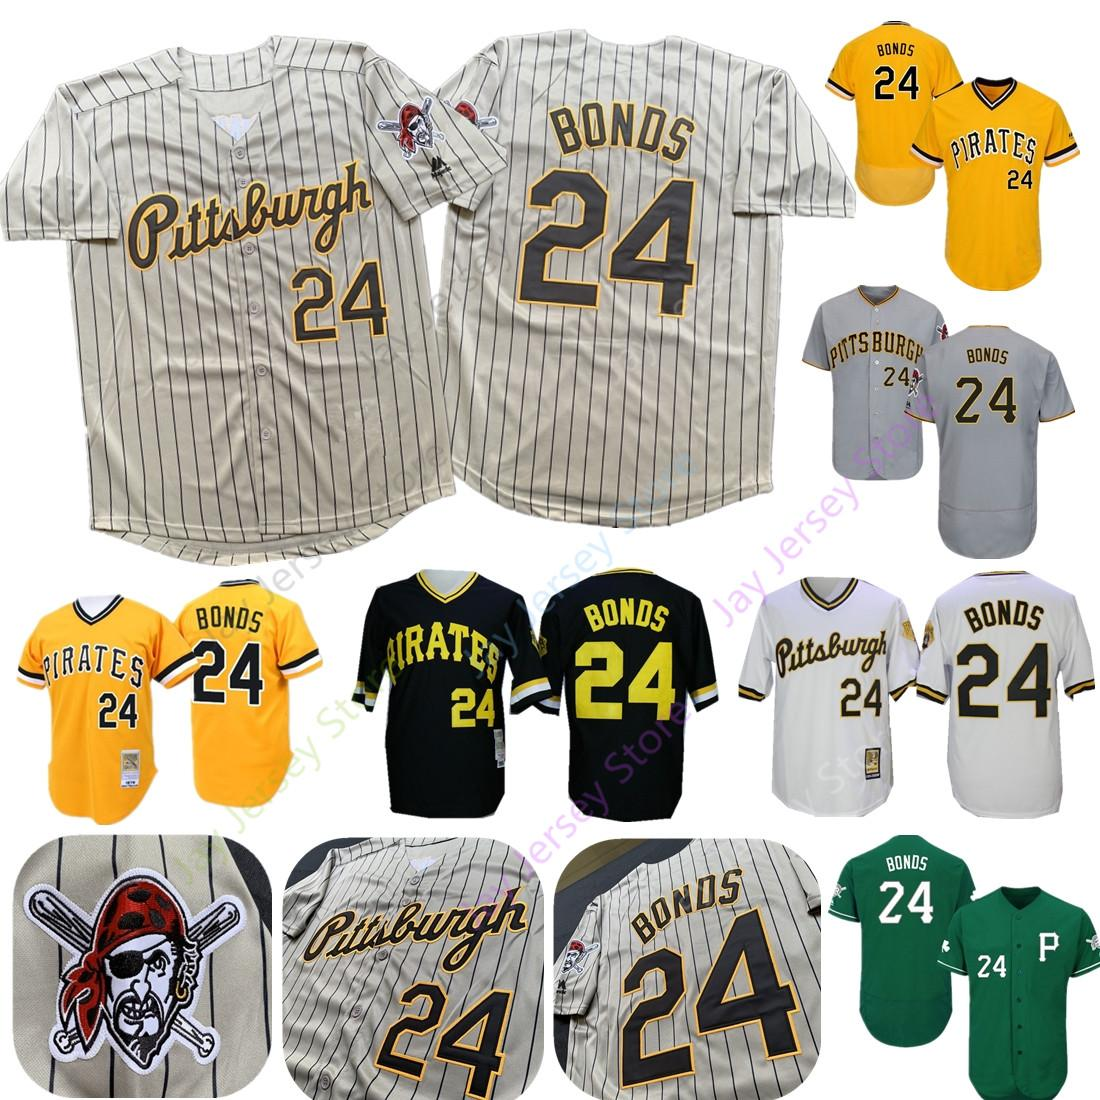 56e711d477 Barry Bonds Jersey 2019 New Pittsburgh Cooperstown Pirates Grey Pinstripe  Yellow Black Pullover Home Away Cool Base All Stitched Cheap